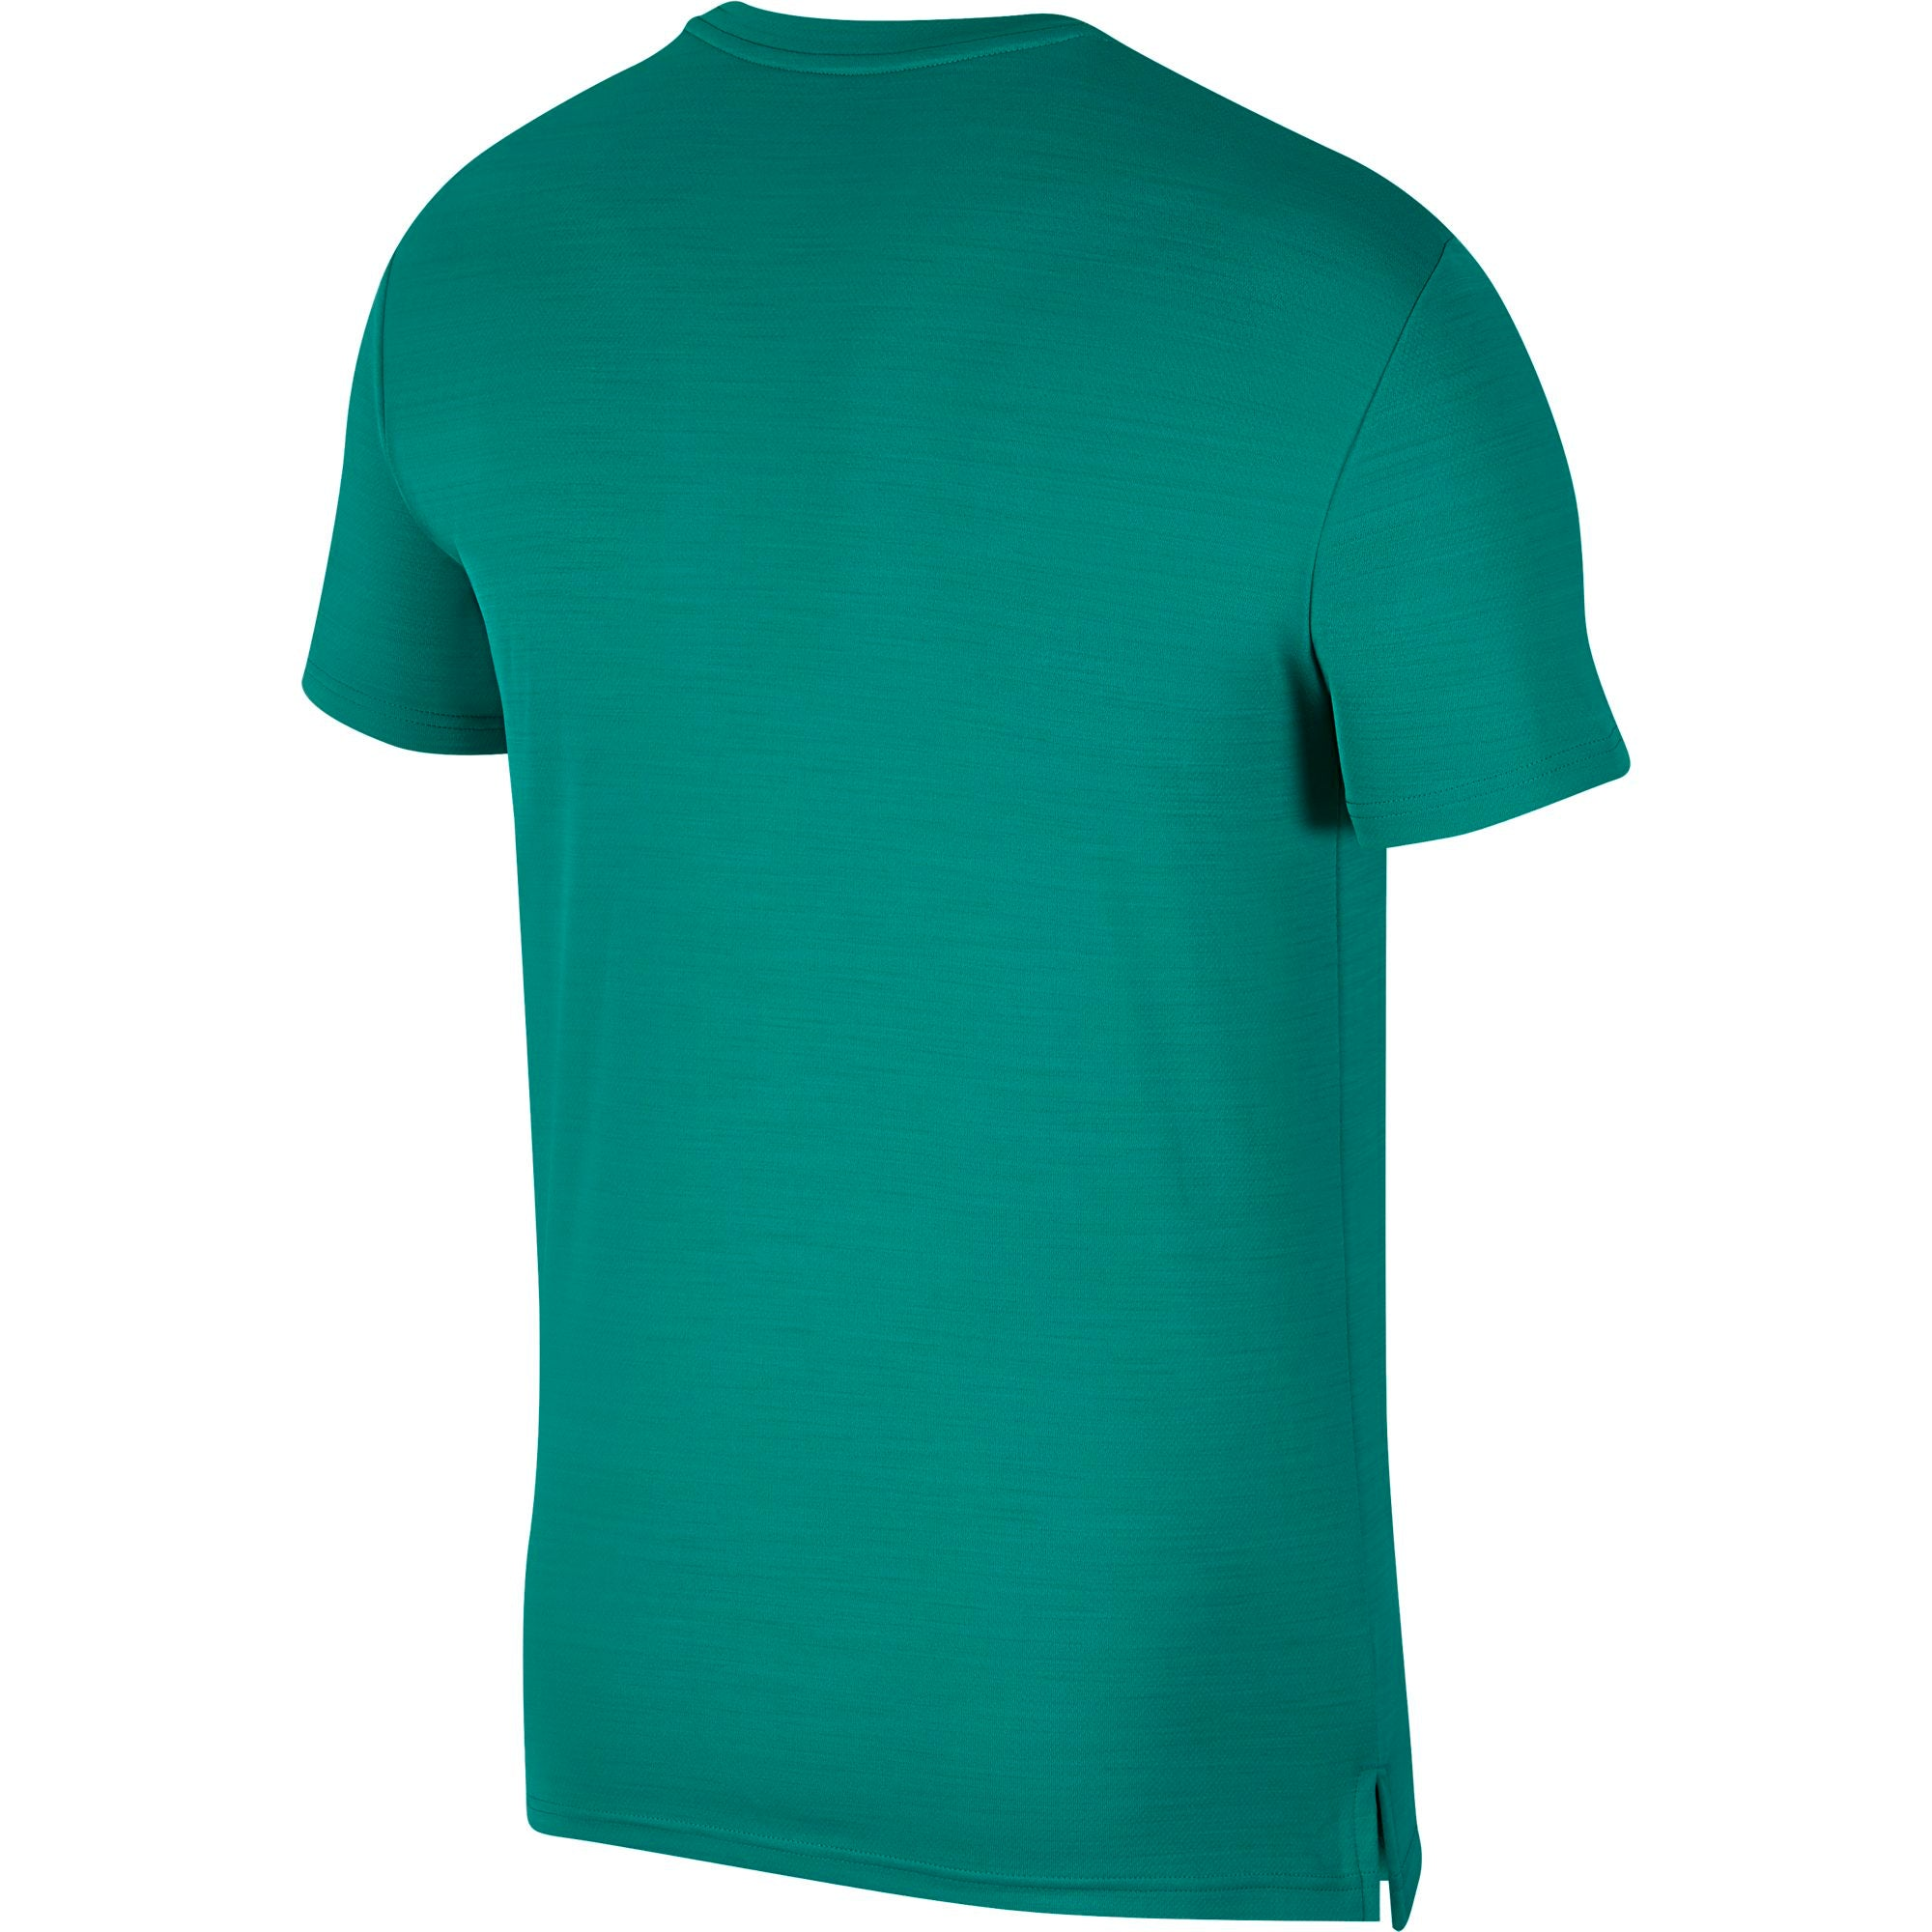 Nike Training Superset Short Sleeved Top (Tall Fit) - Neptune Green/Black